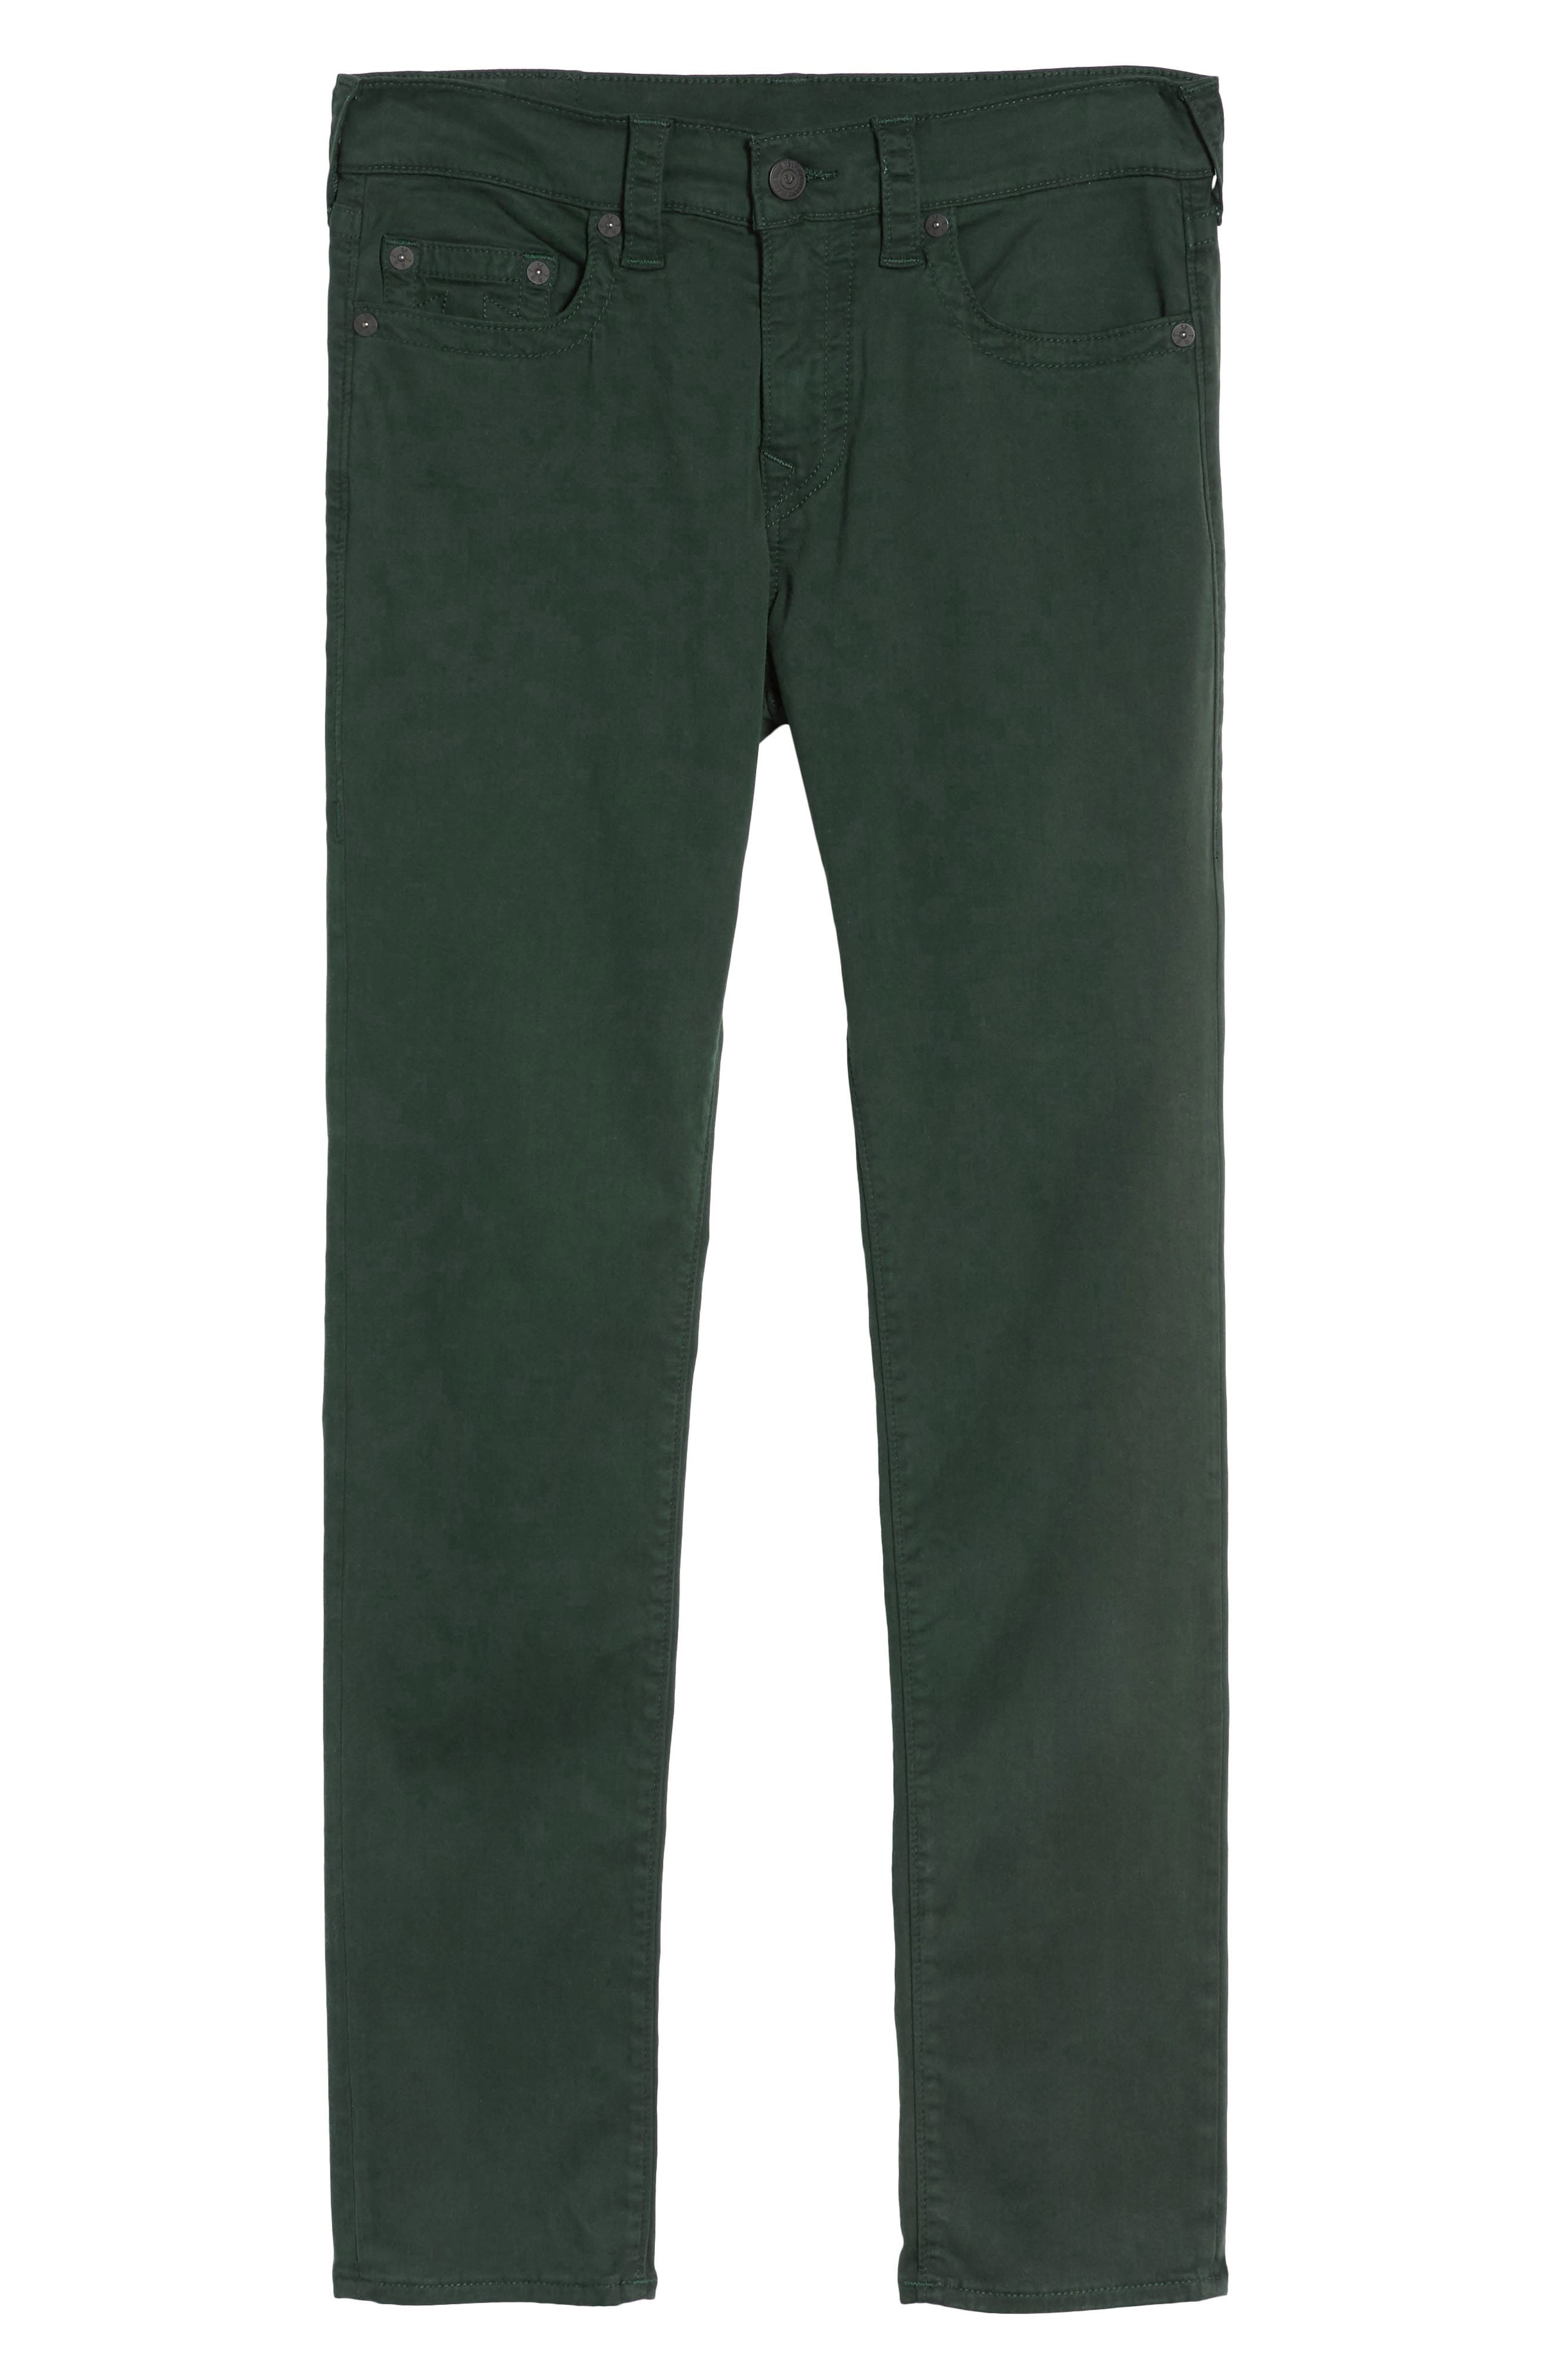 Rocco Skinny Fit Jeans,                             Alternate thumbnail 6, color,                             300